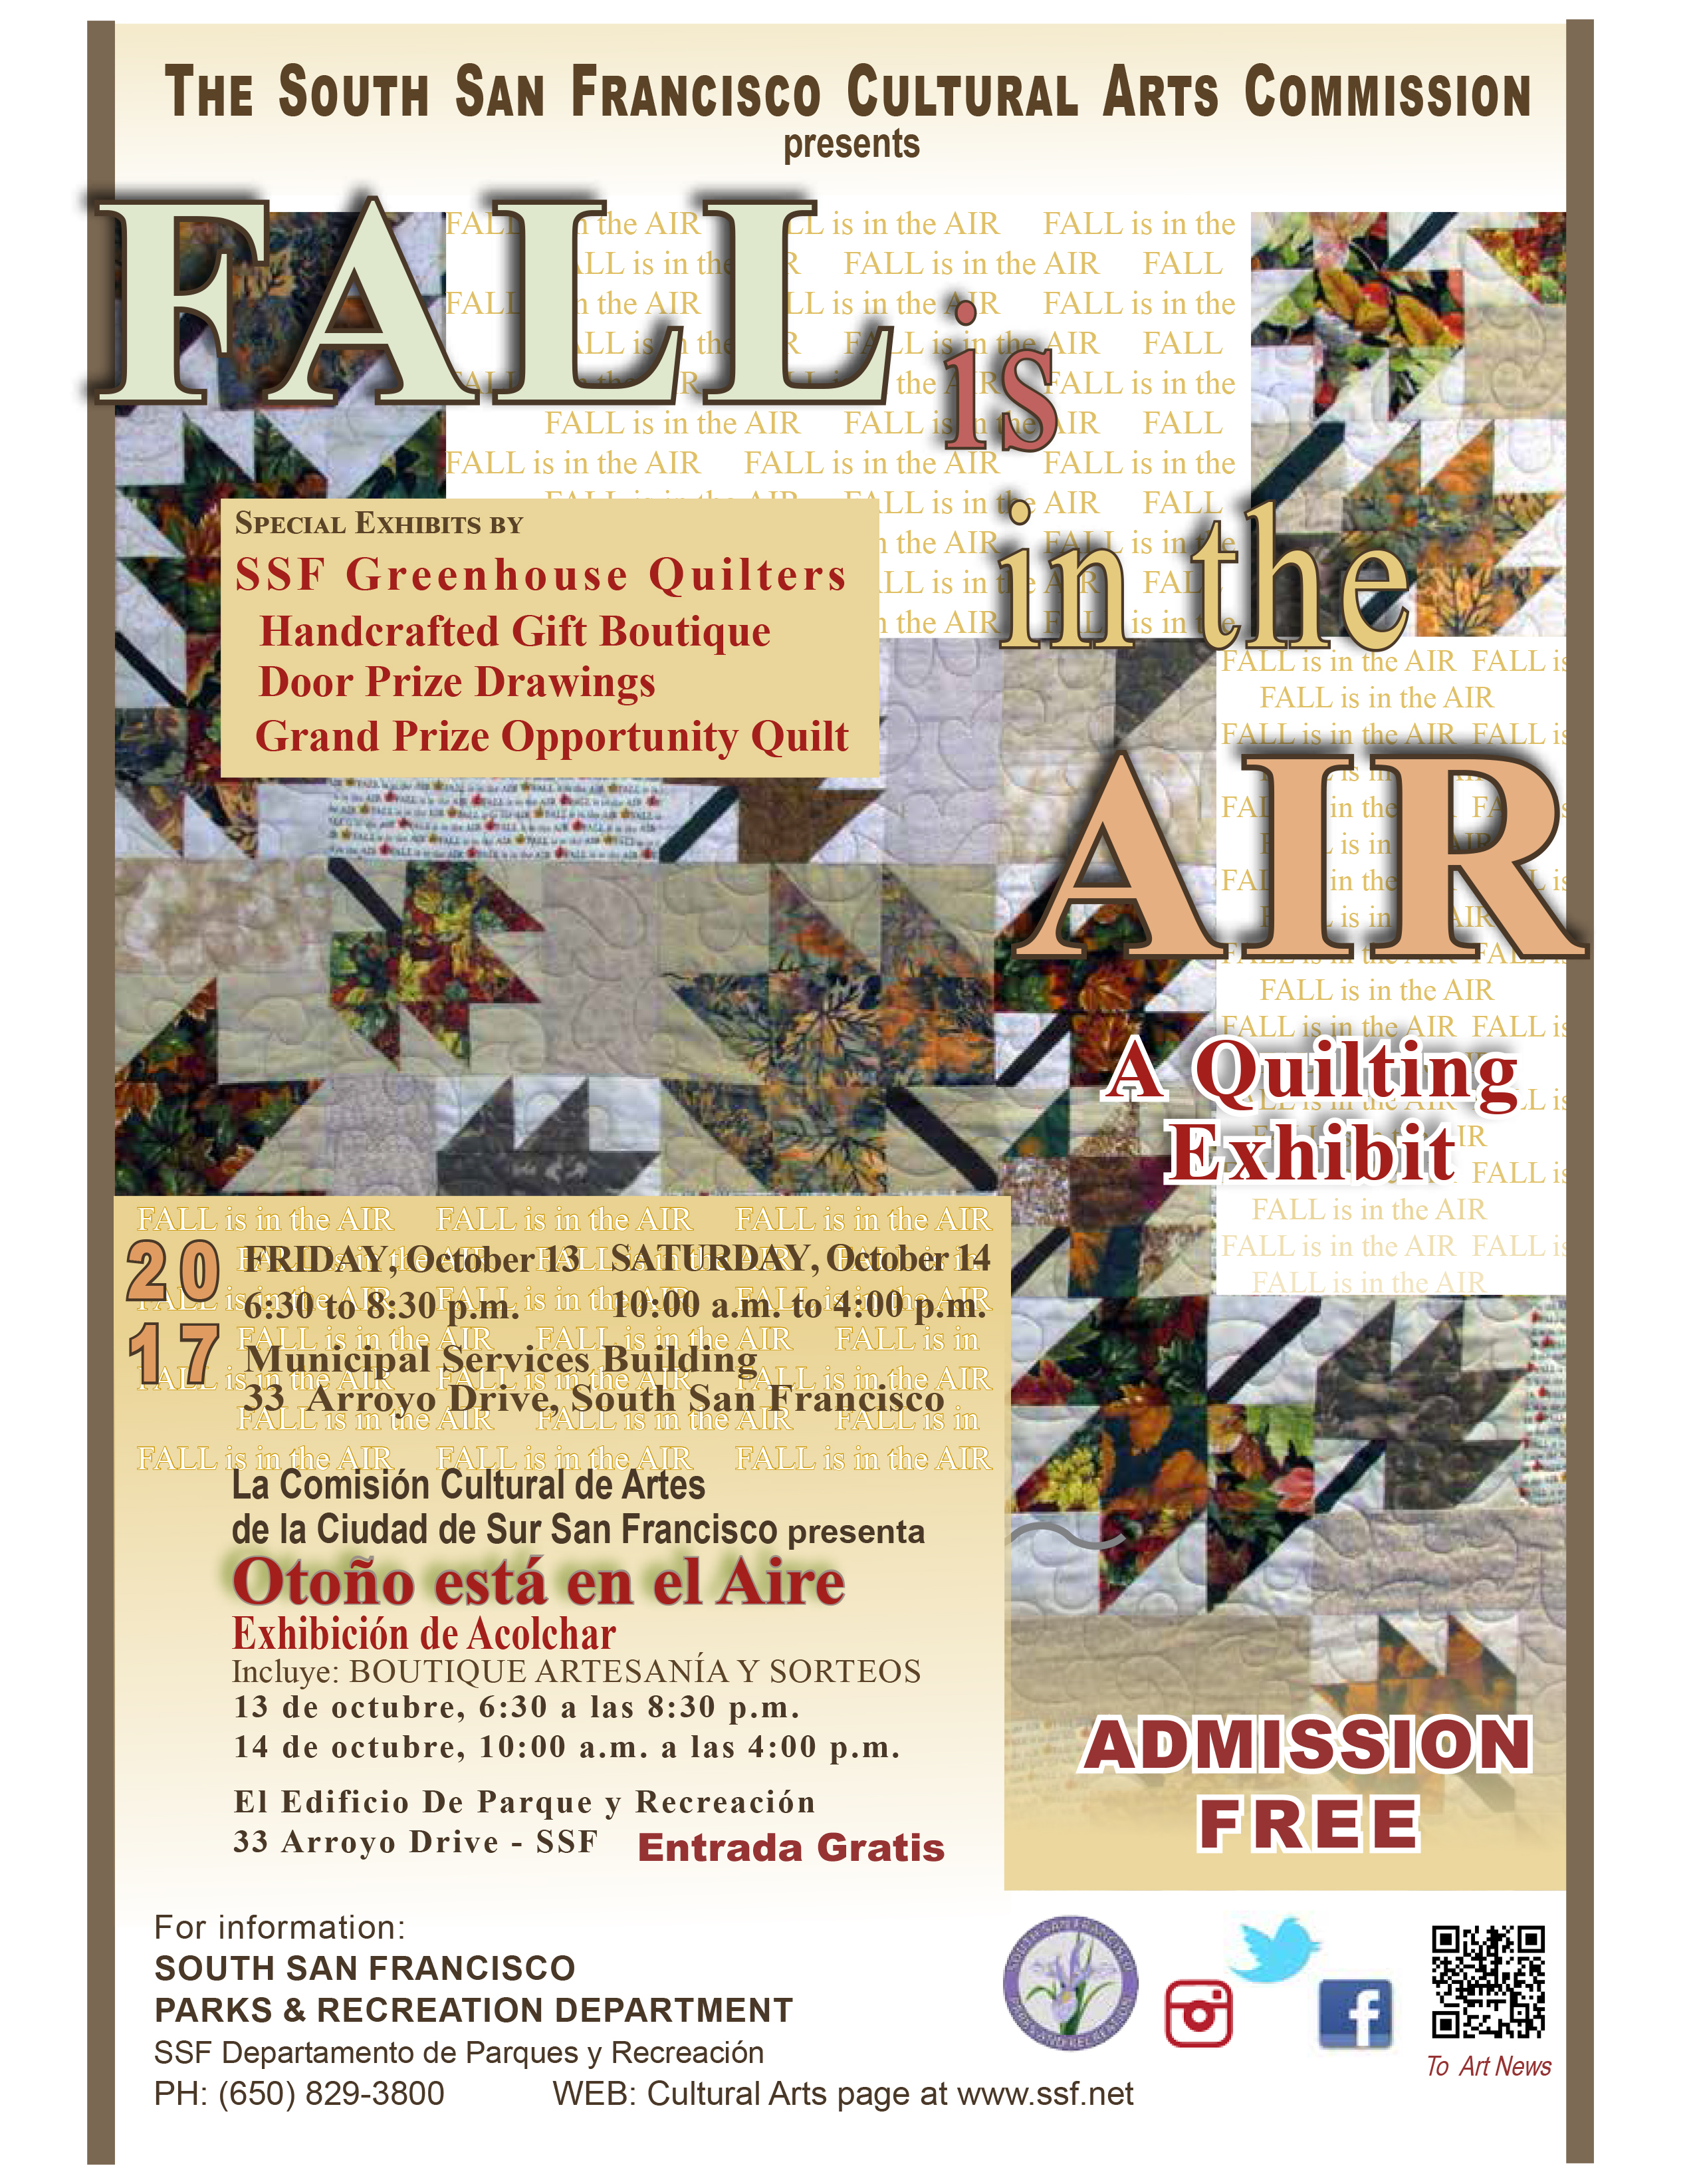 Fall is in the AIR – A Quilting Exhibit Presented by The South San Francisco Cultural Arts Commission